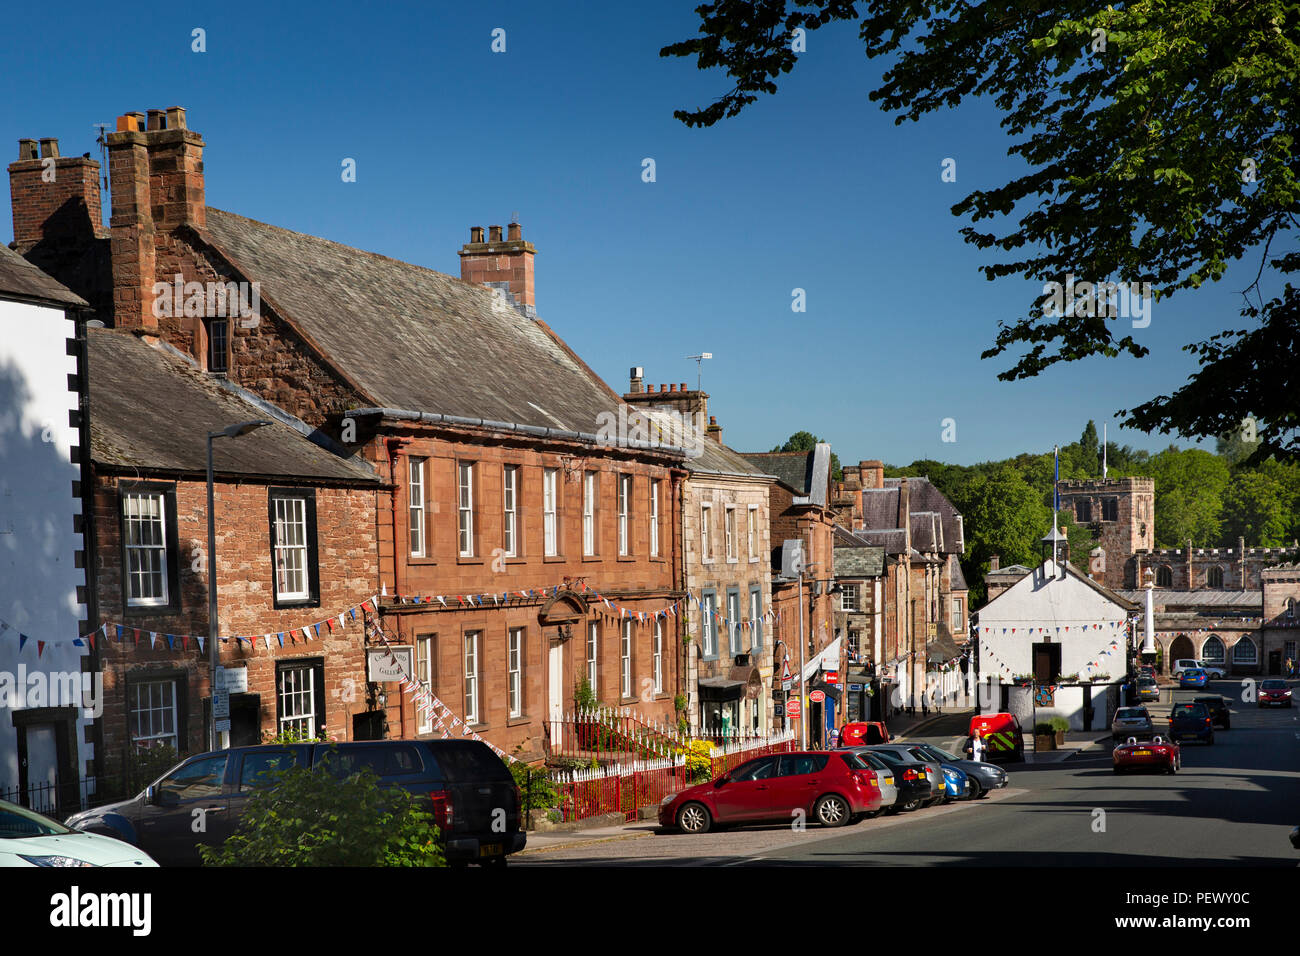 UK, Cumbria, Eden Valley, Appleby, Boroughgate, The Red House and neighbouring historic houses - Stock Image